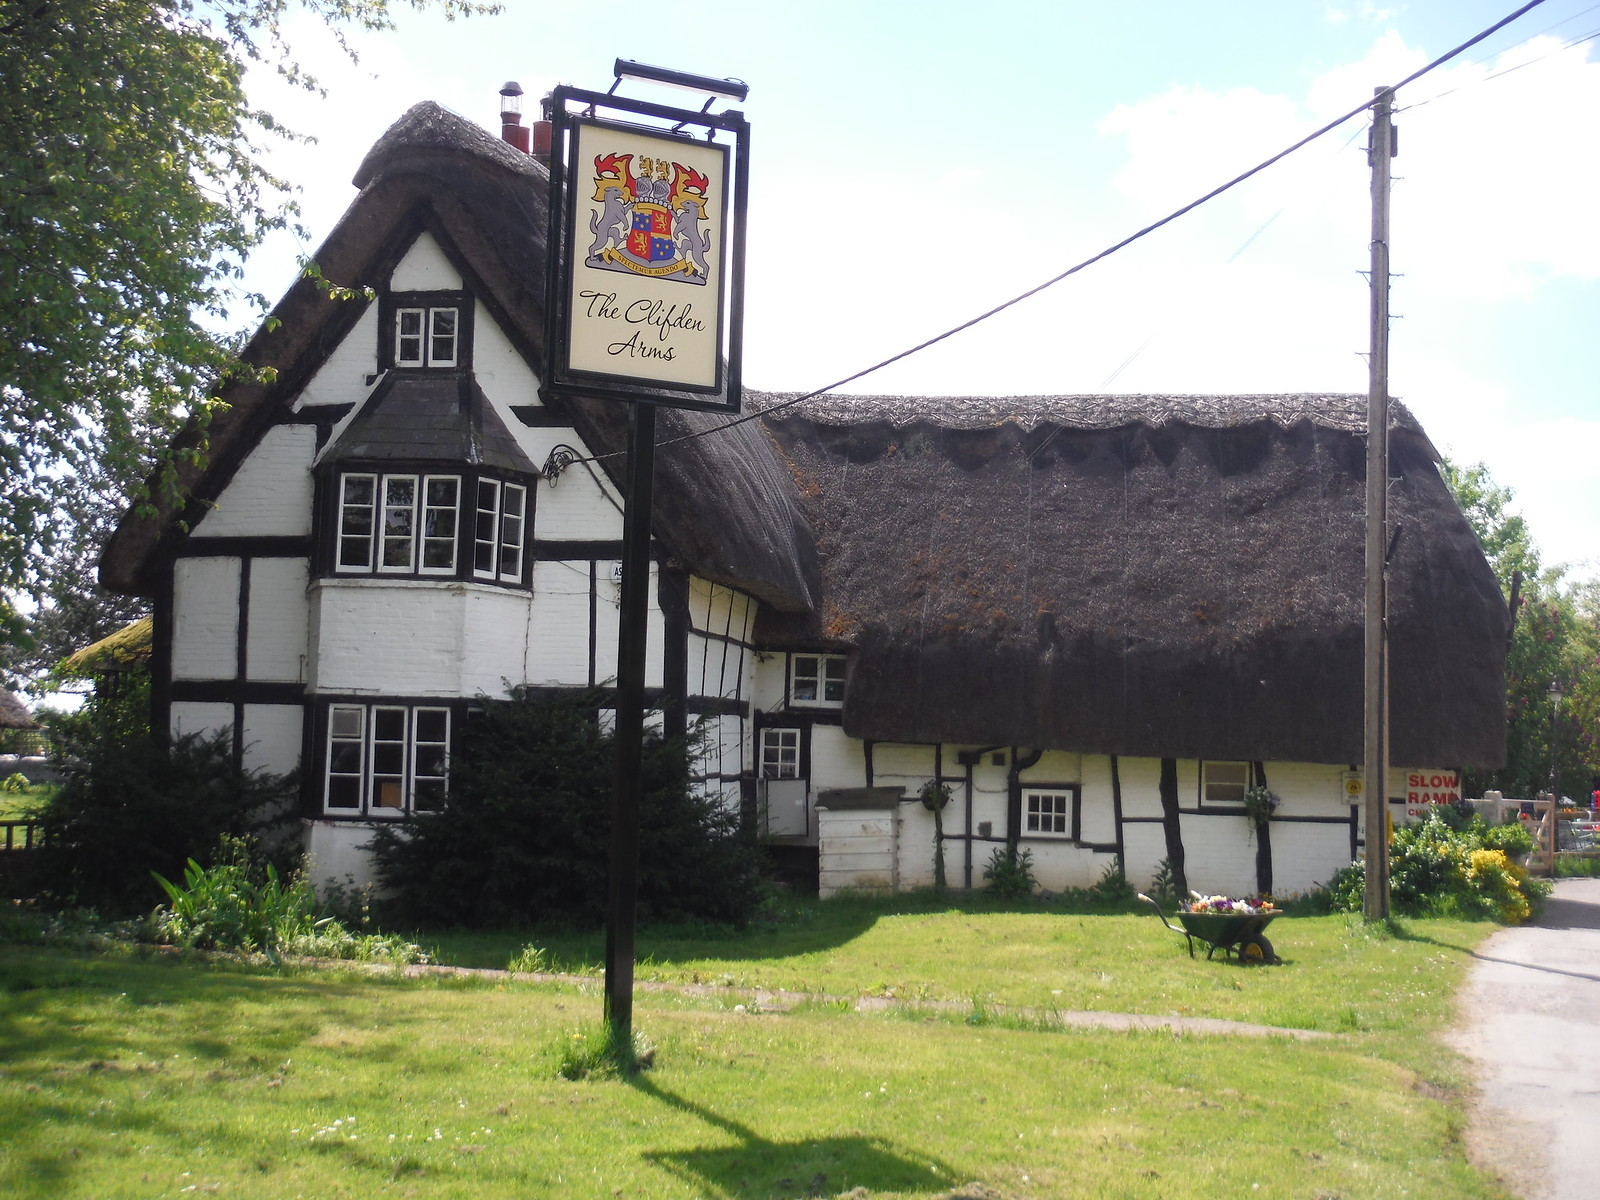 The Clifden Arms, Worminghall SWC Walk 190 - Thame Circular